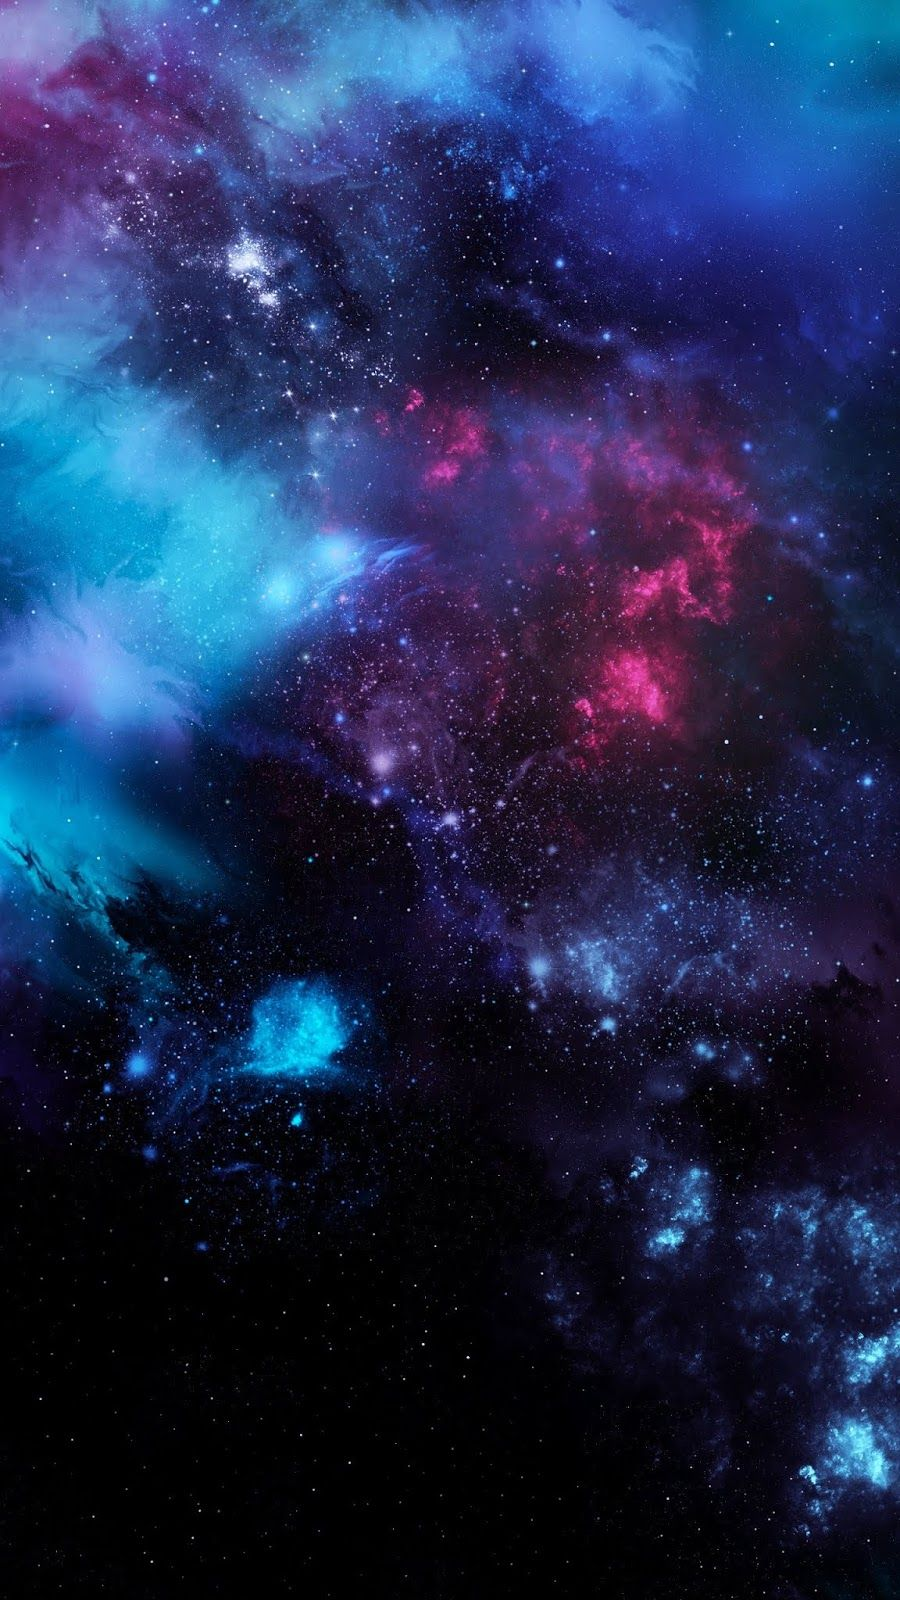 Space Wallpaper For Amoled Display Galaxy Painting Wallpaper Space Galaxy Wallpaper